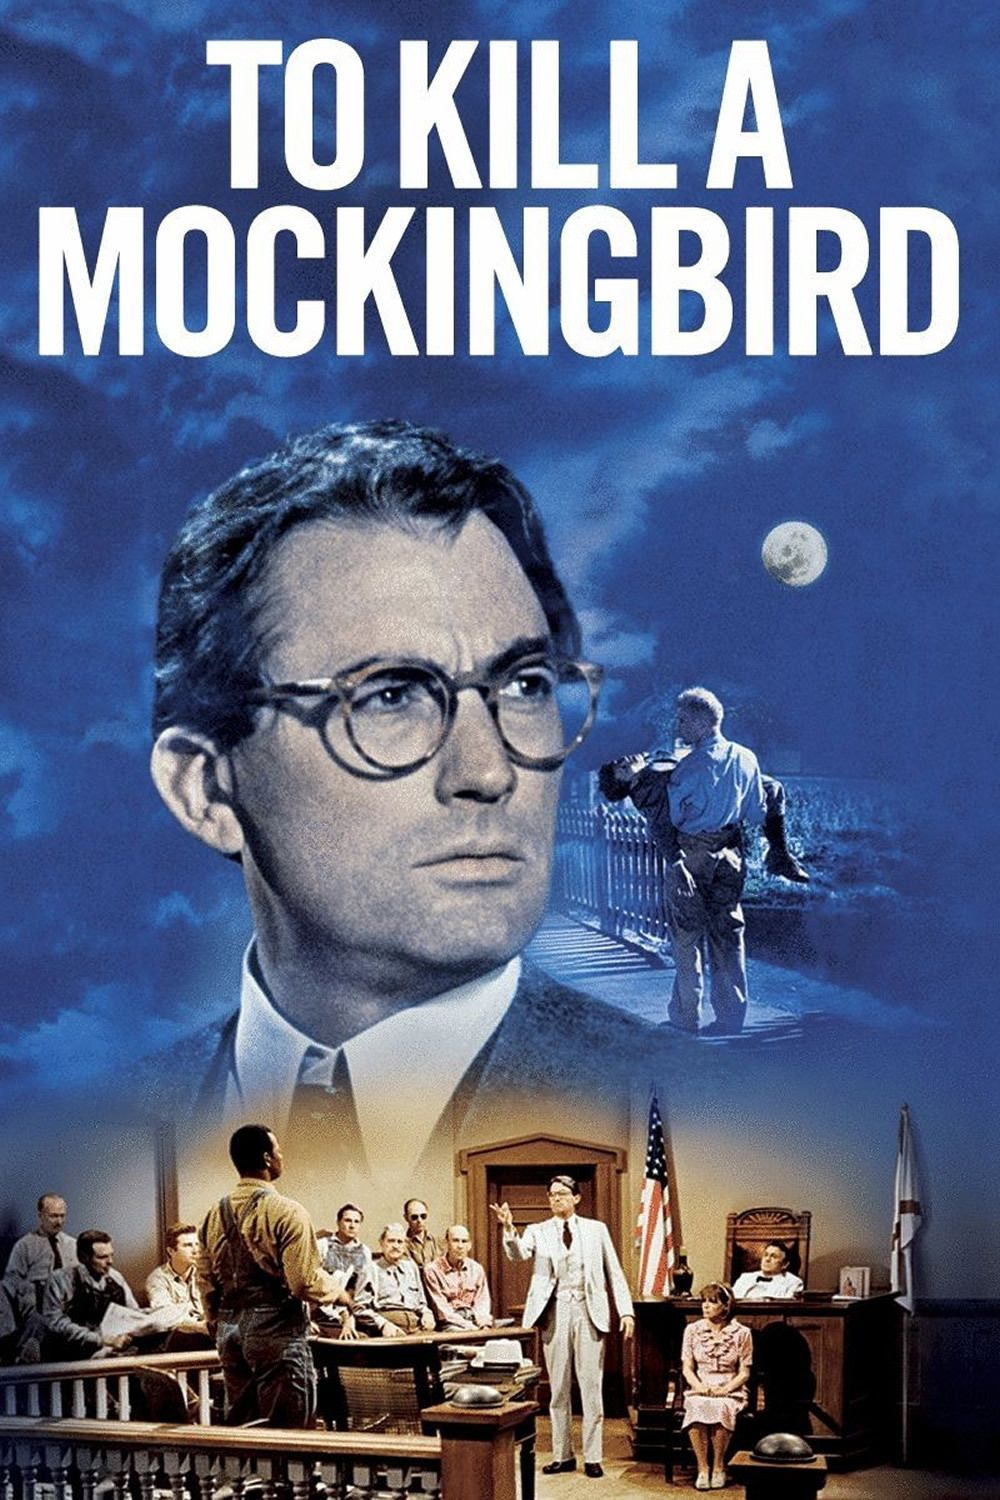 to kill a mockingbird eulogy The verdict of tom robinson in lee's to kill a mockingbird a closer look at the ways of the south during the time period 1925 through 1935 reveals the accurate representation of society in harper lee's to kill a mockingbird.